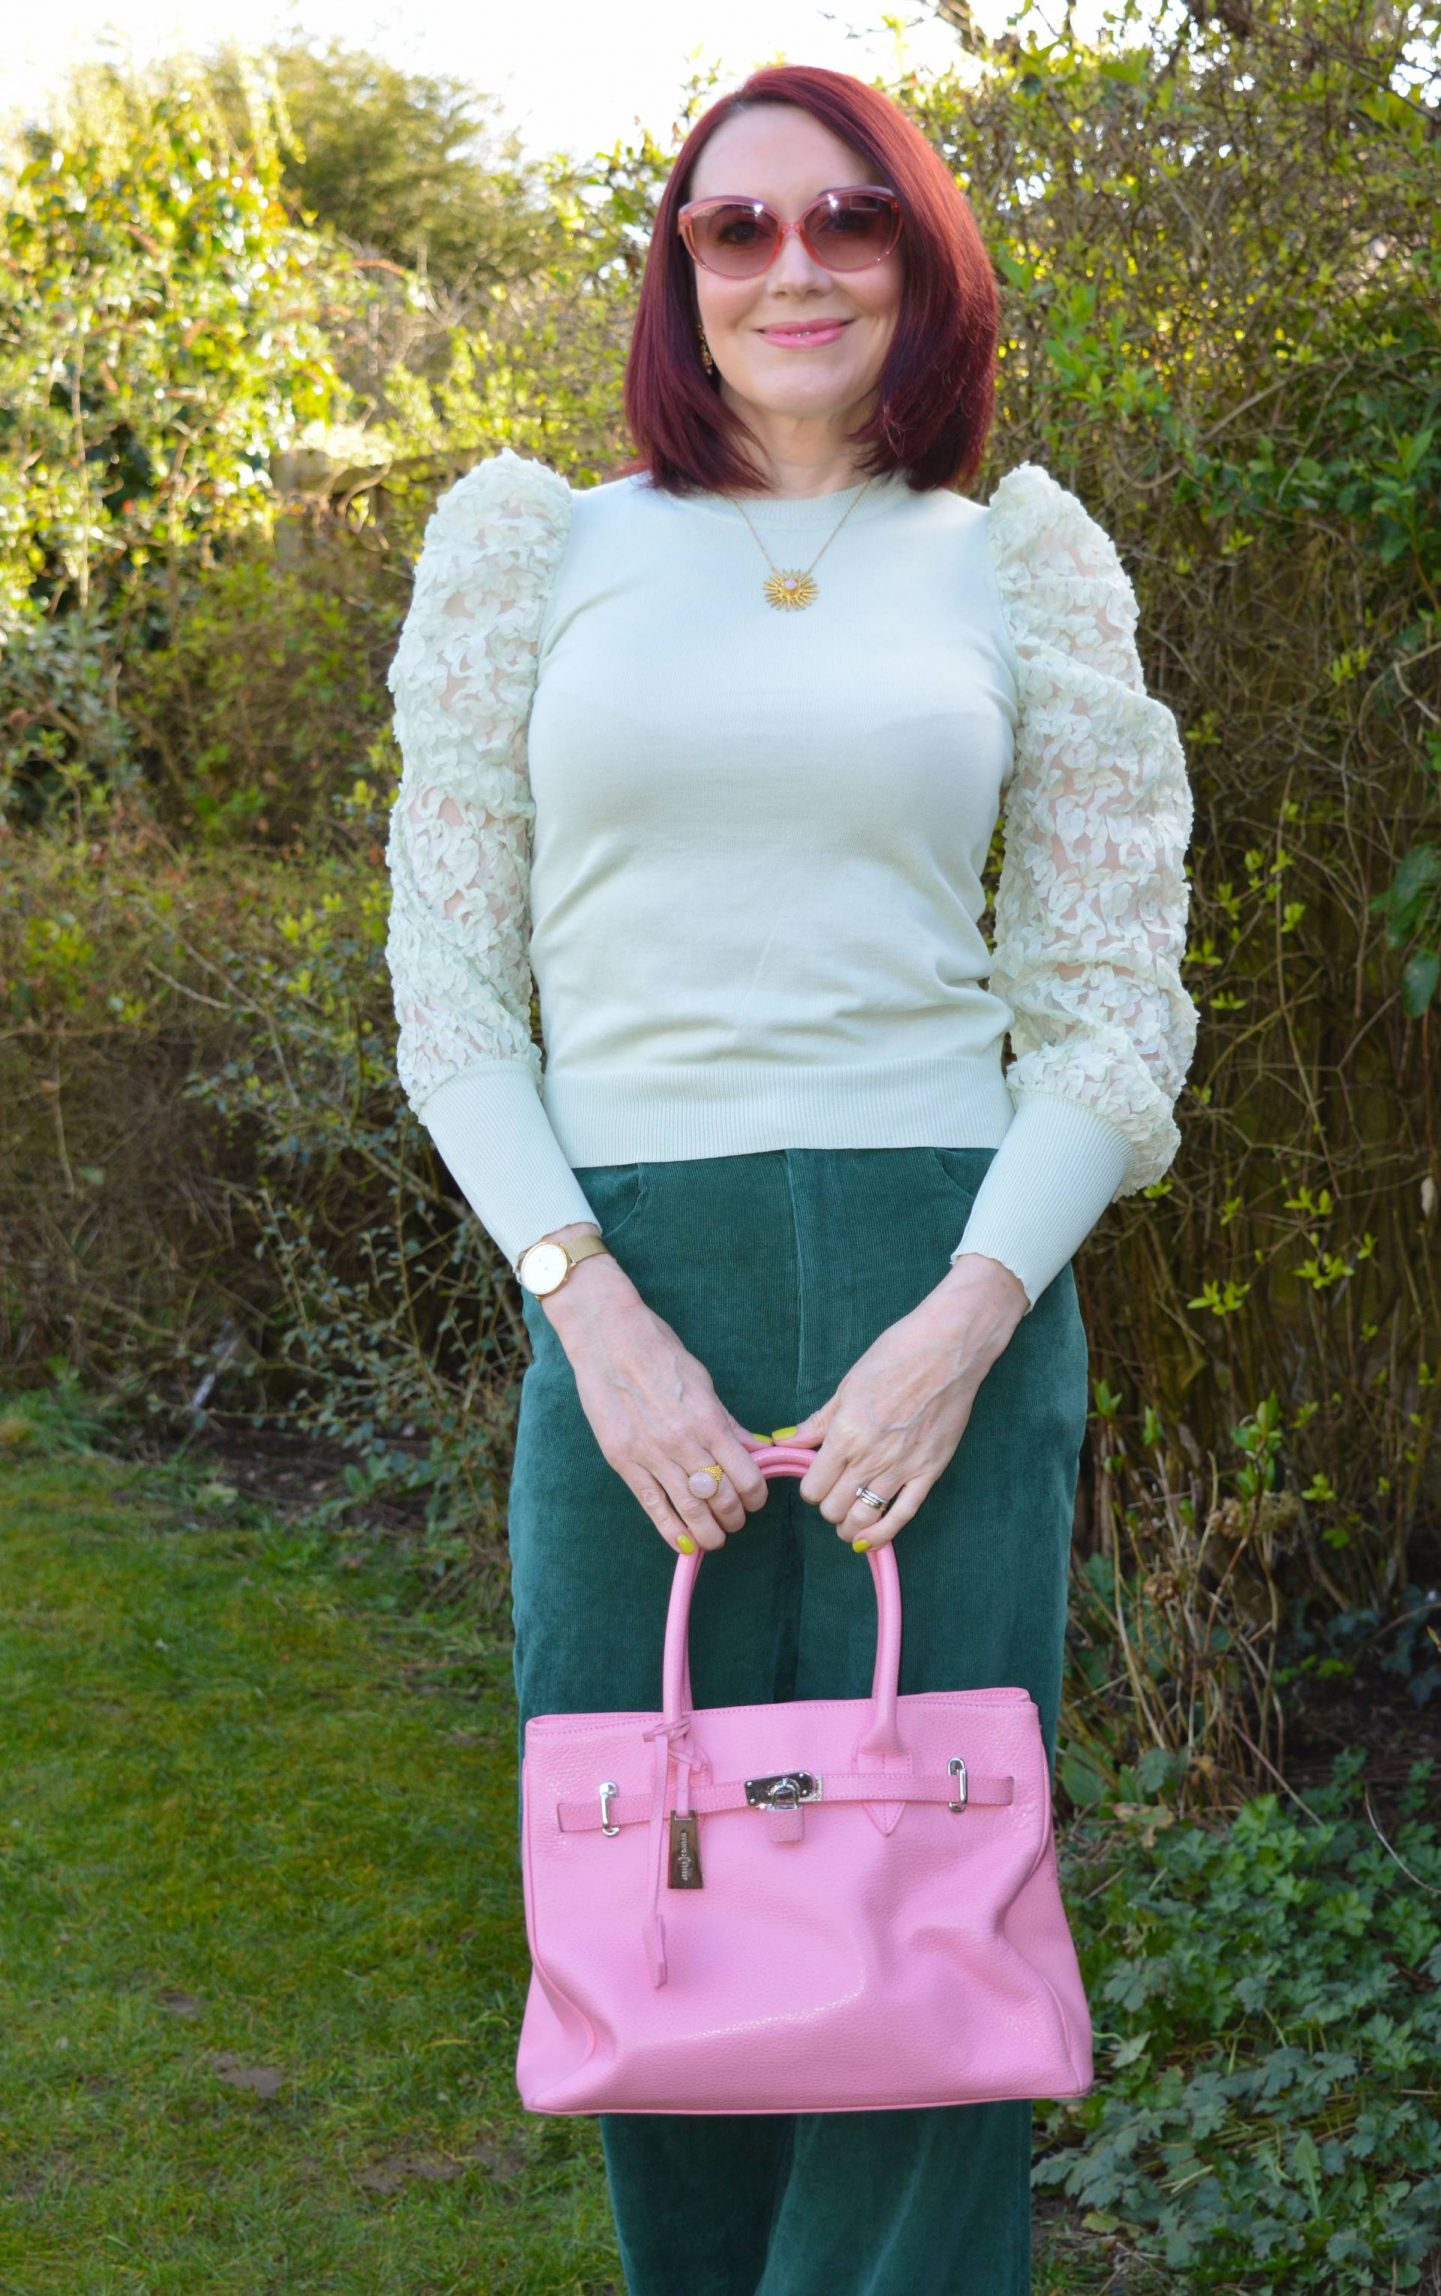 Coast forest cord trousers, mint green sheer sleeve top, Asos dark green boots, J by Jasper Conran pink tote bag